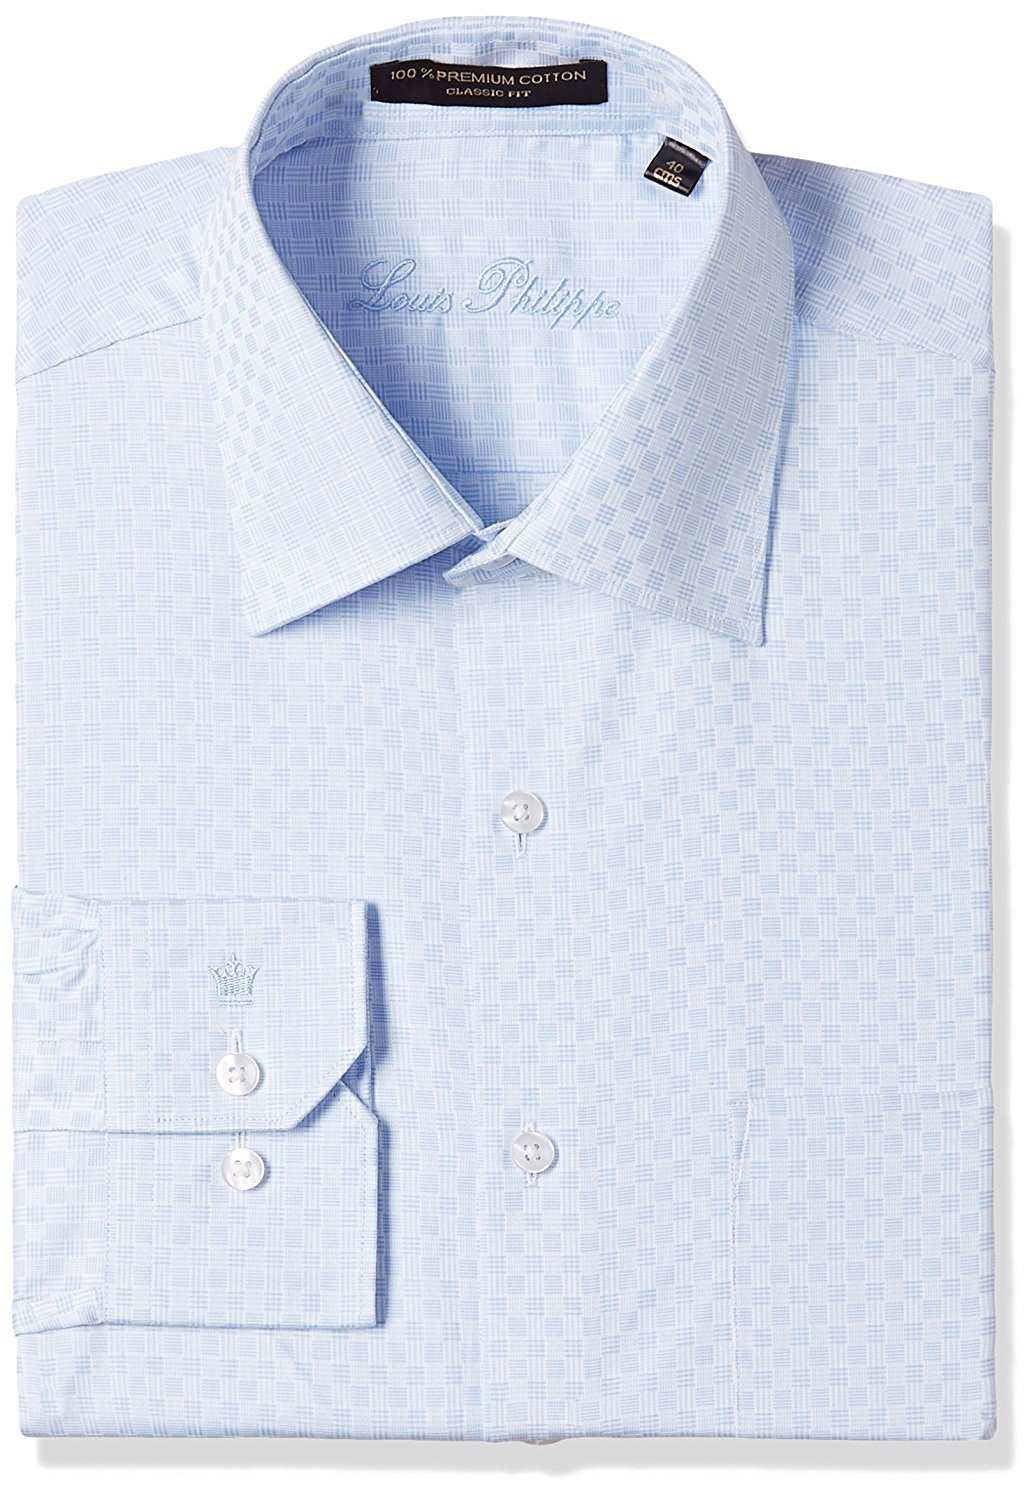 formal shirts for men in India